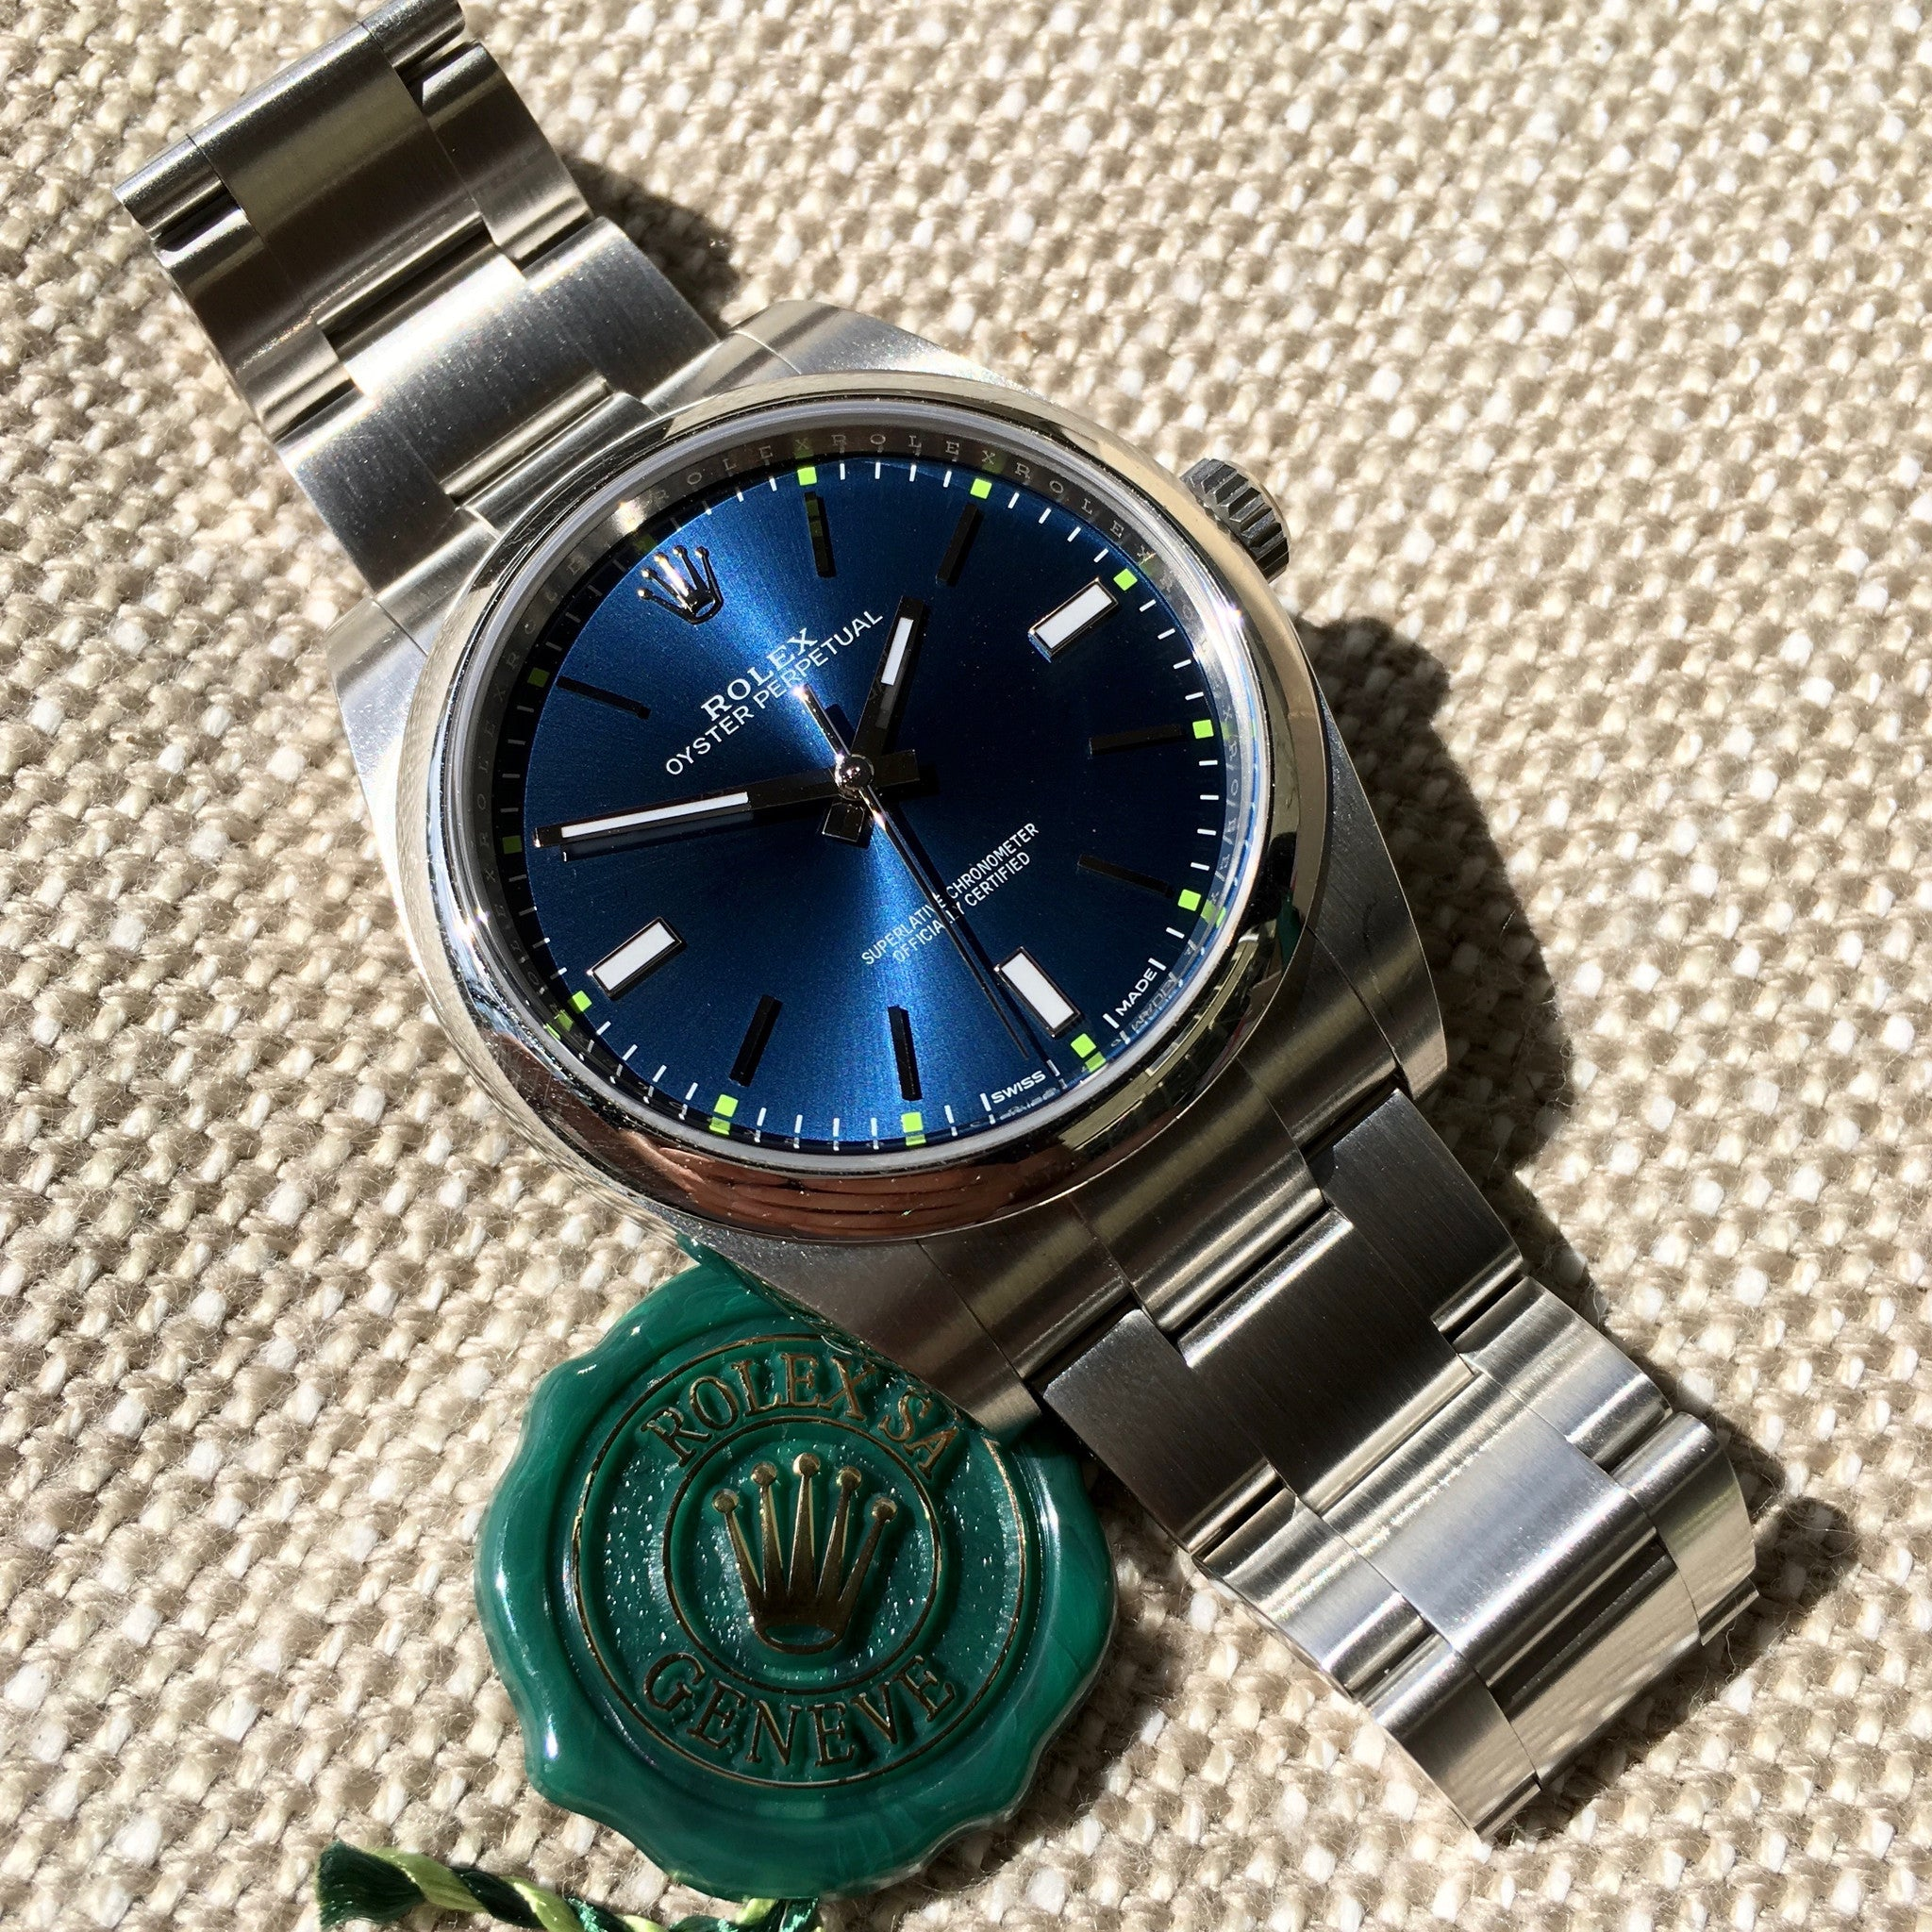 Rolex Oyster Perpetual 114300 Blue Green Stainless Steel Mens Automatic Watch - Hashtag Watch Company